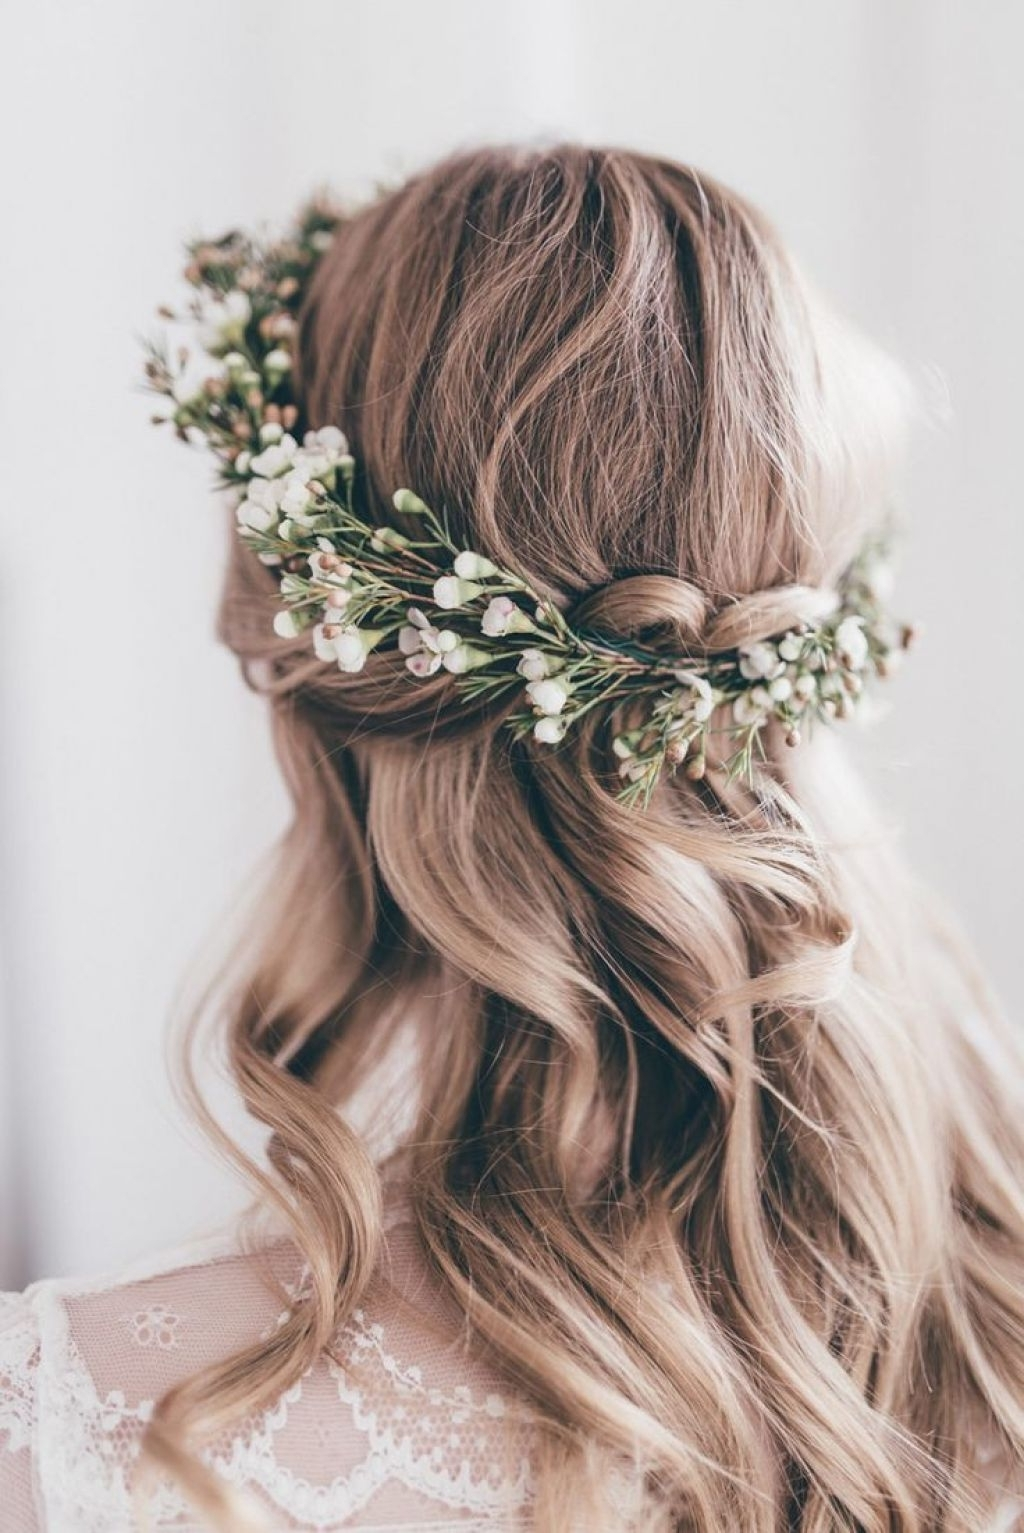 √ 24+ Nice Flower Girl Wedding Hairstyles: Wedding Hairstyles For Throughout Newest Wedding Hairstyles For Long Hair With Crown (View 1 of 15)